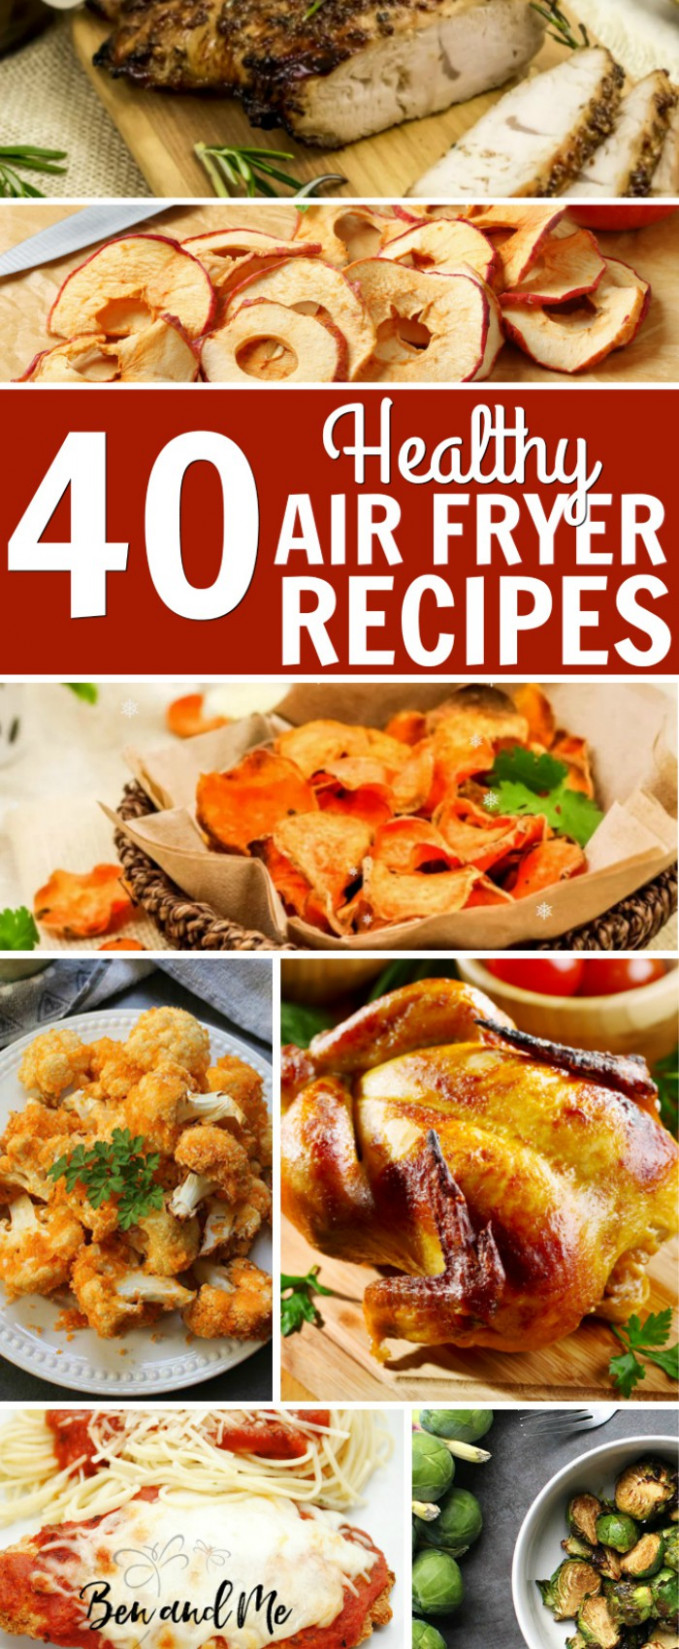 40 Healthy Air Fryer Recipes - Ben and Me